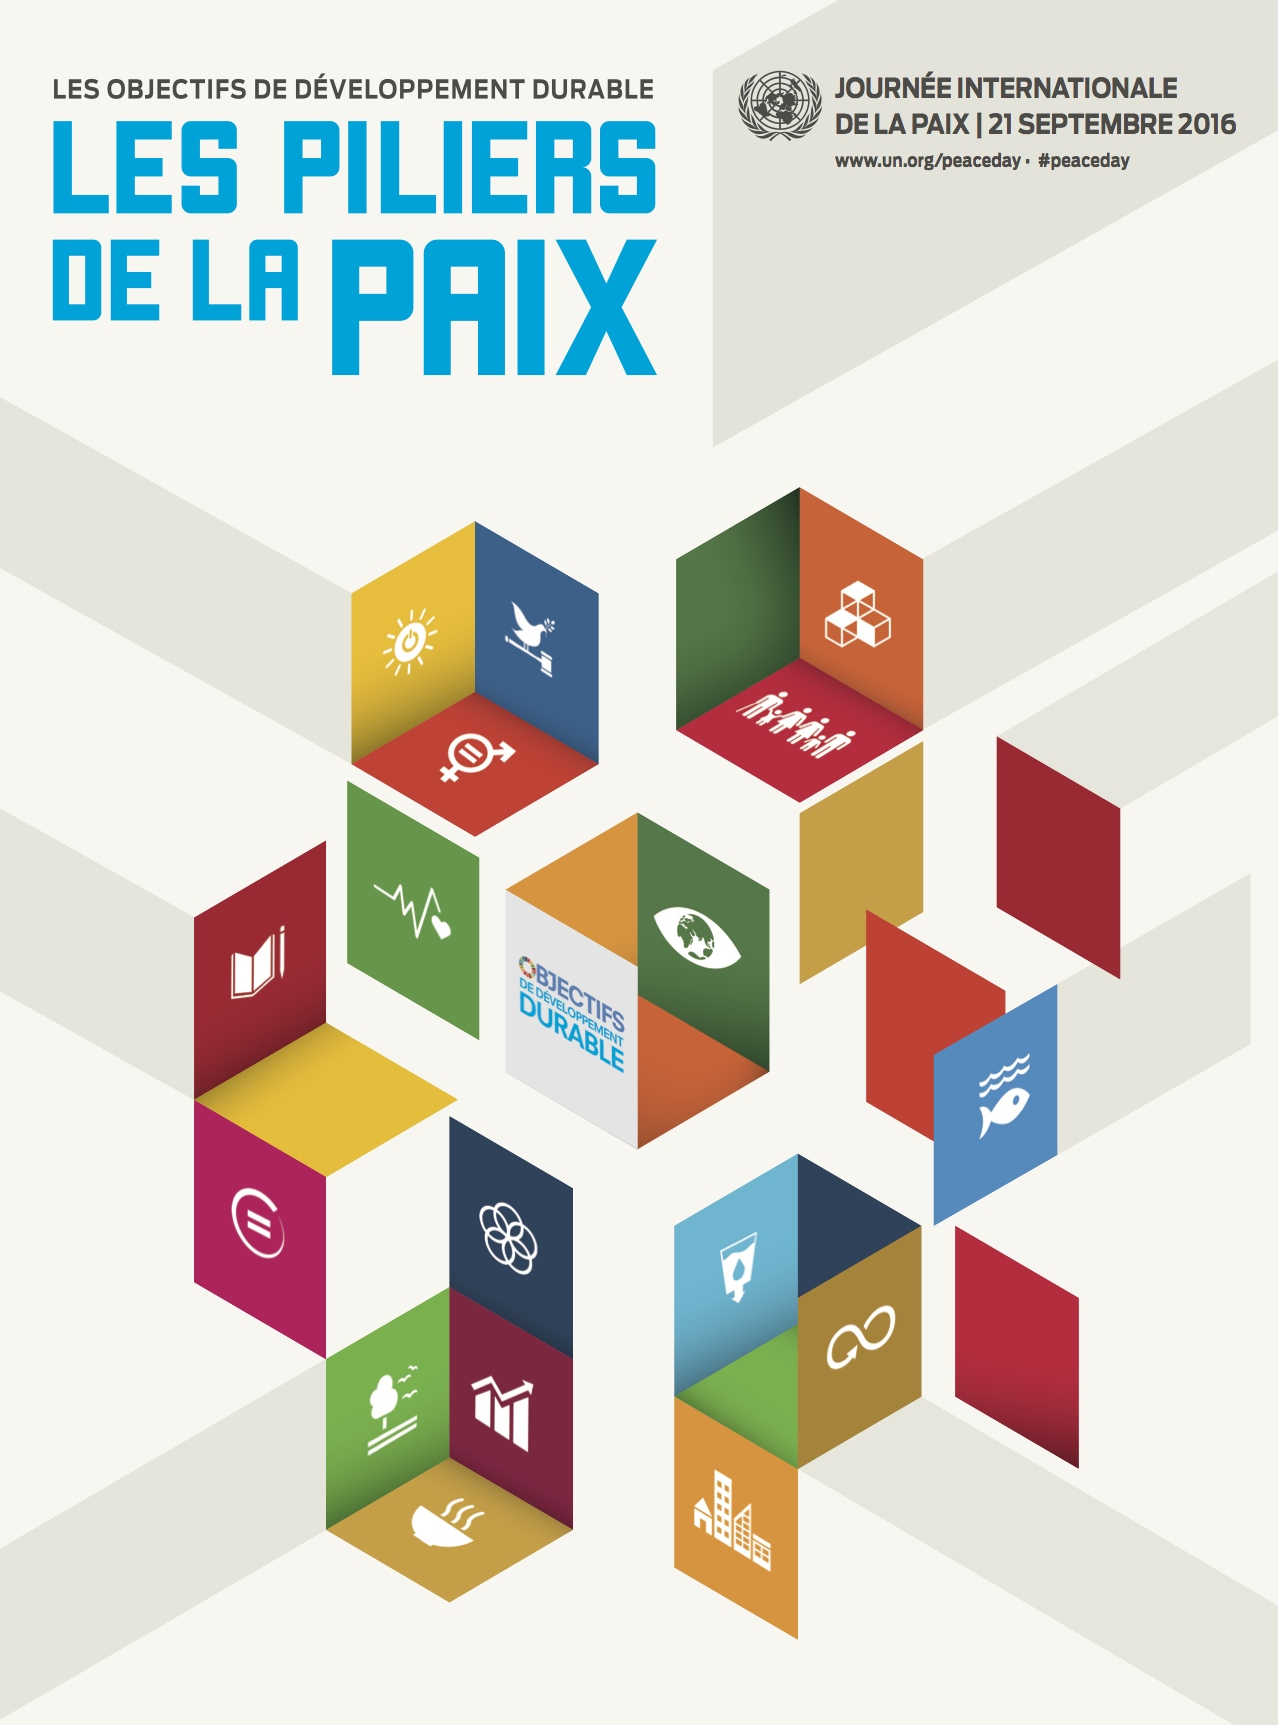 Journée internationale de la paix 2016